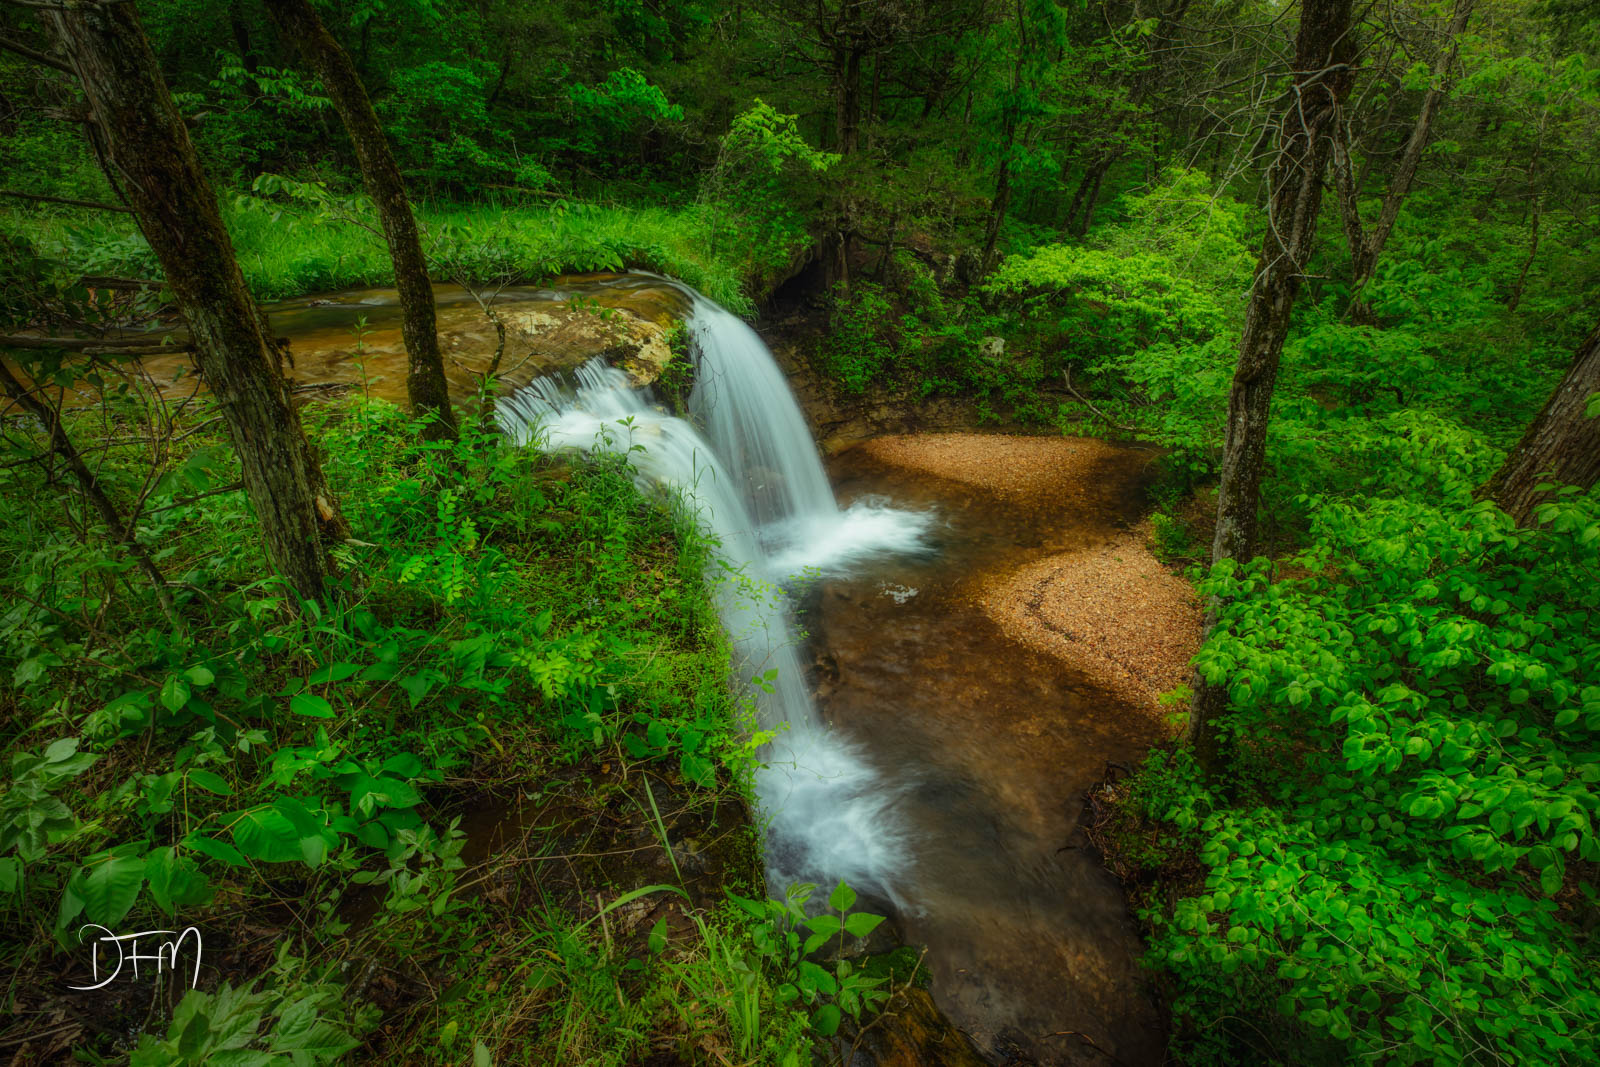 The late spring full flow of the Glory B Waterfall in North West Arkansas.